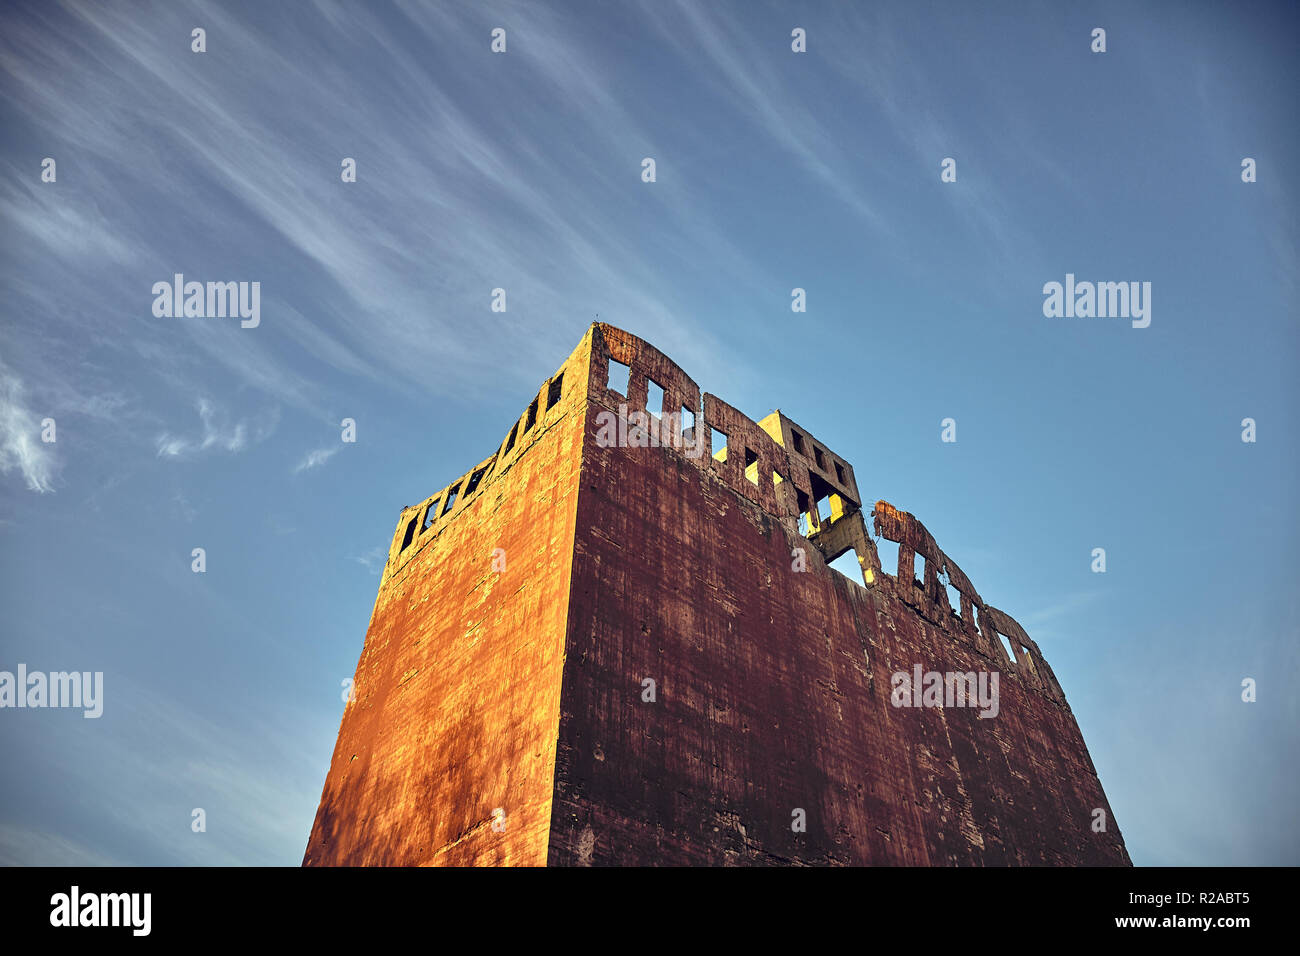 Scary abandoned post apocalyptic style concrete tower at sunset, color toned picture. - Stock Image